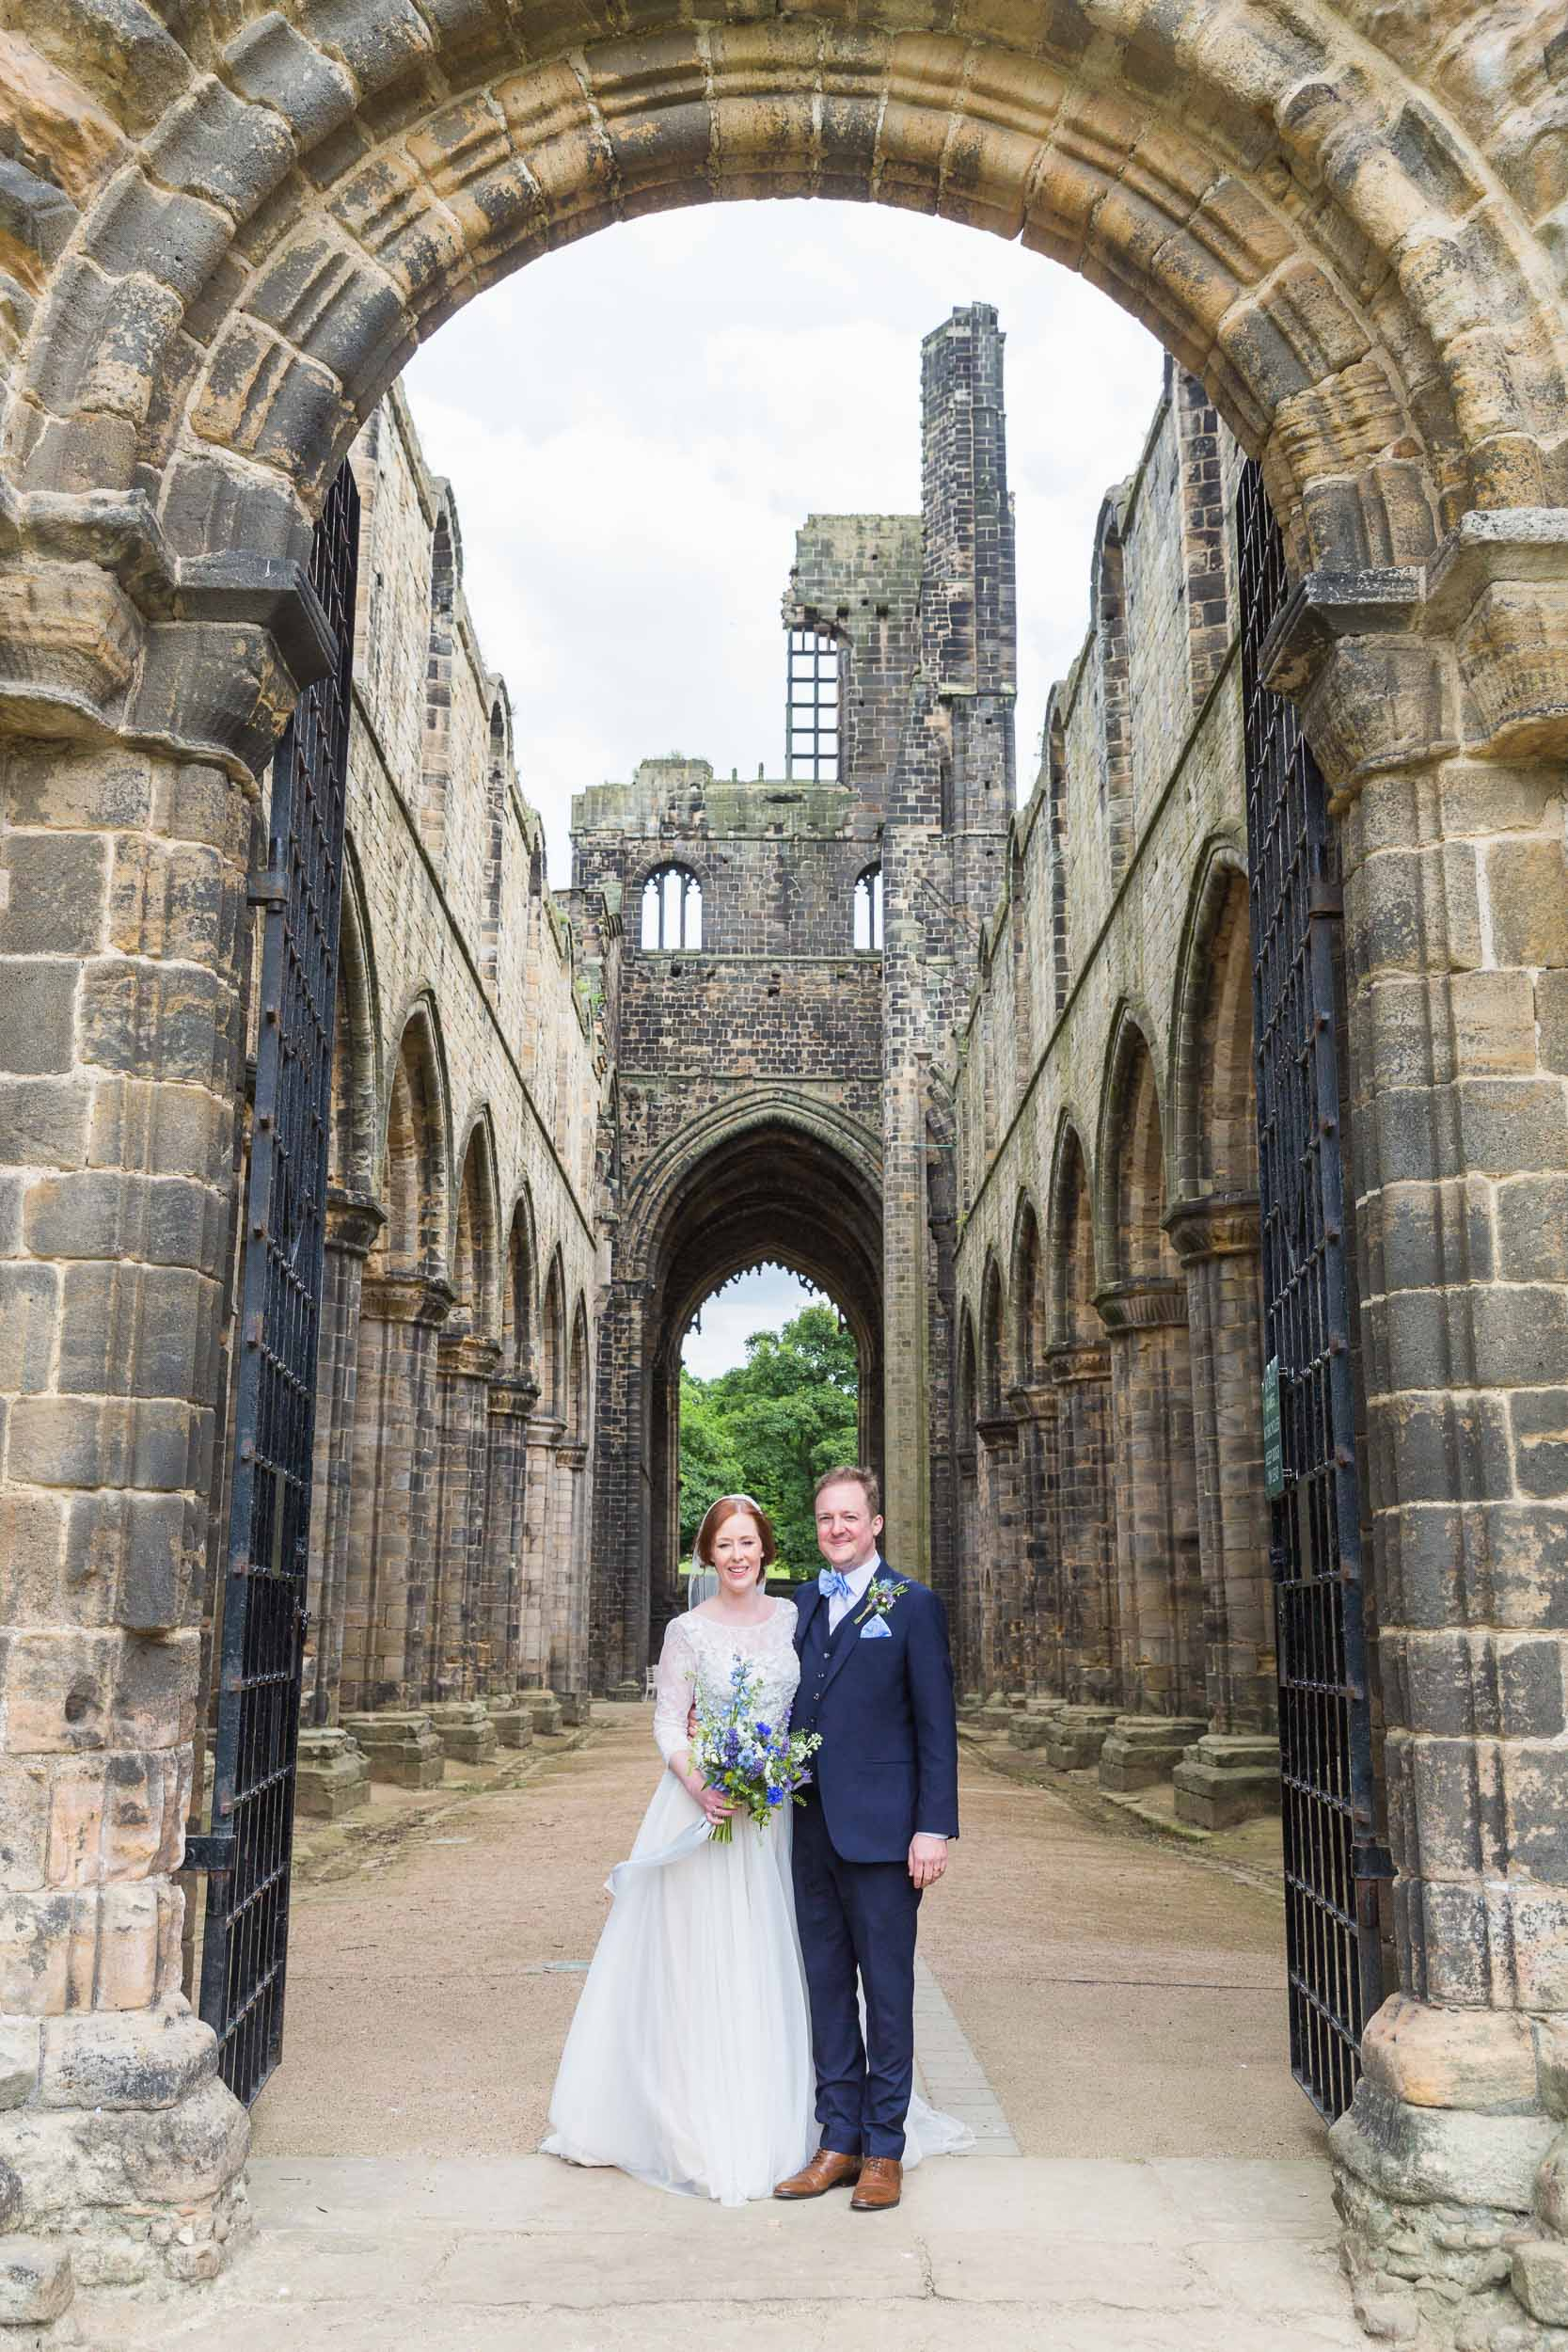 Amy & Oliver-Wedding Part II-Kirkstall Abbey-Leeds-photo-0318.jpg